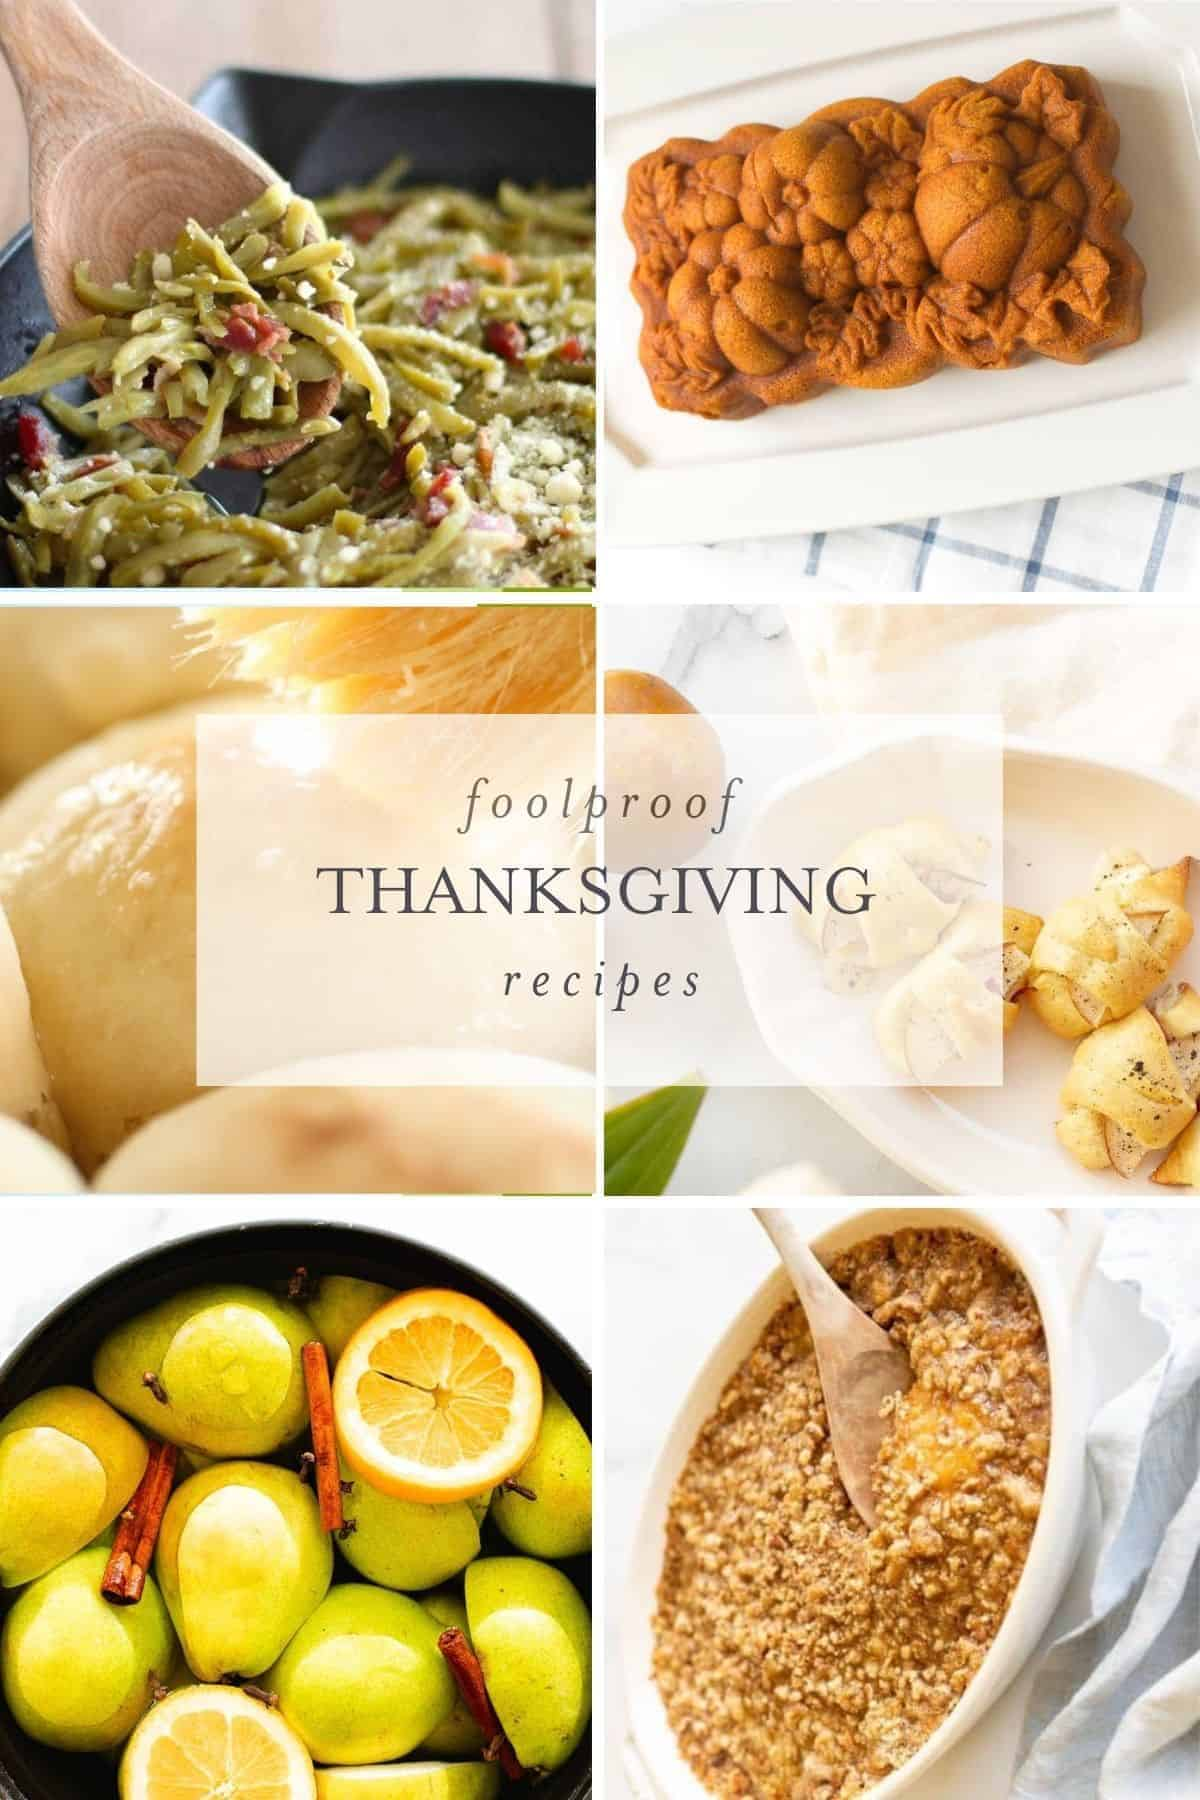 "A collage of Thanksgiving recipes with text overlay that says ""foolproof thanksgiving recipes""."